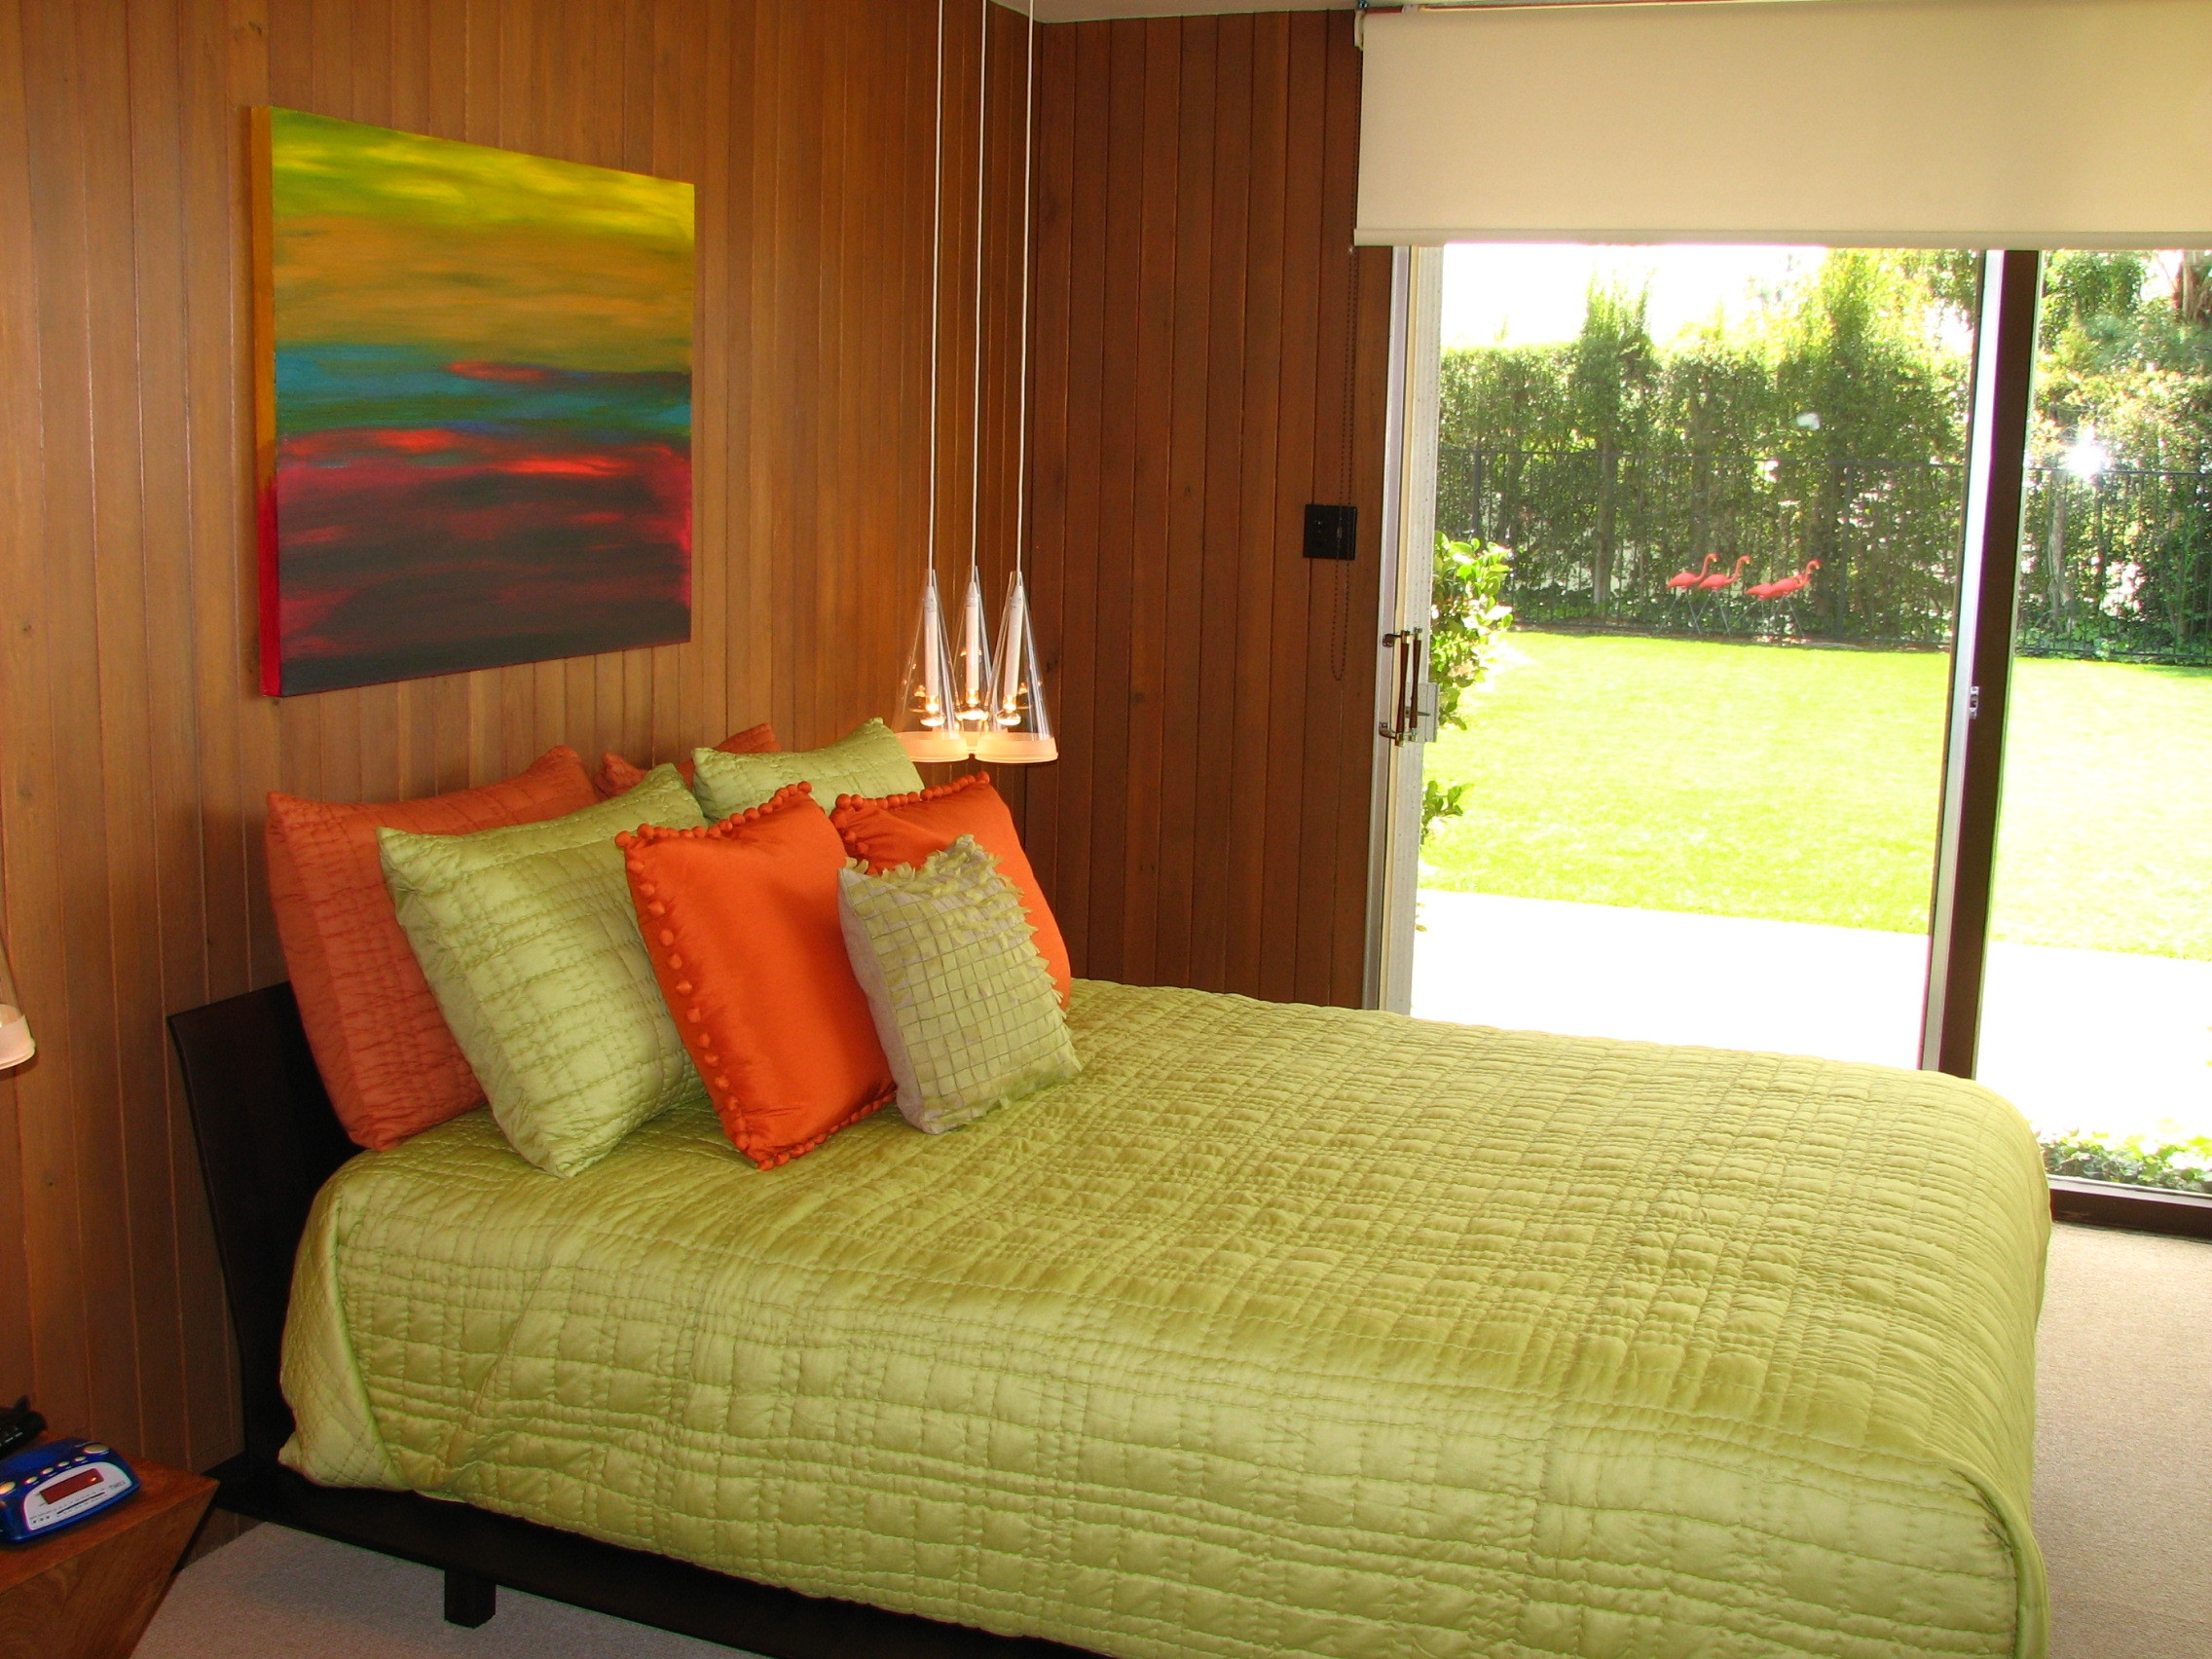 Best ideas about Feng Shui Bedroom . Save or Pin Feng Shui Tips Now.